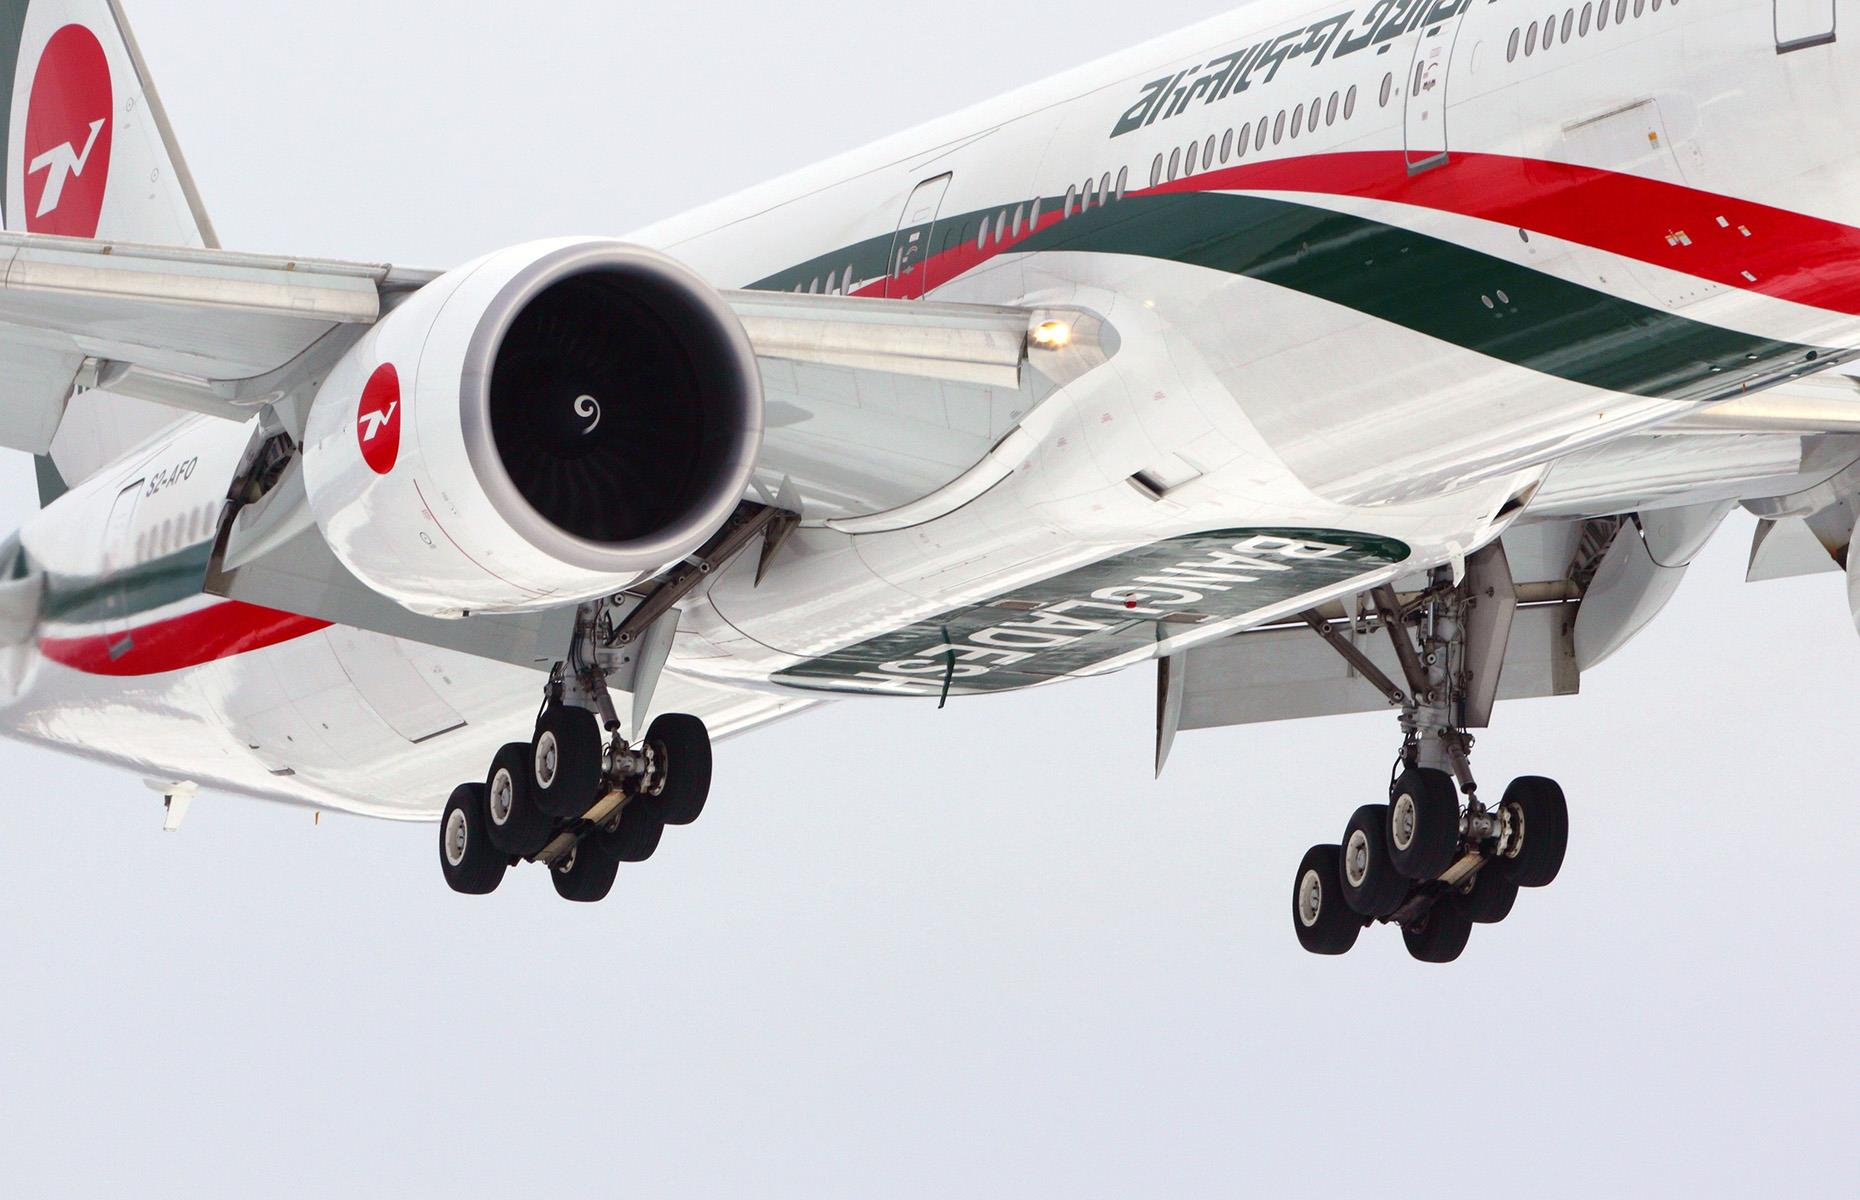 Slide 22 of 35: One of the most defining features of the Triple Seven, as it's known colloquially, is its large landing gear. Each 'leg' has a set of six tires, making it capable of withstanding a load of up to 32.3 tons (29,294 kg). It also has thicker wings with a large span, meaning it has better take-off performance and can cruise at higher altitudes of over 43,000 feet (13,106m).